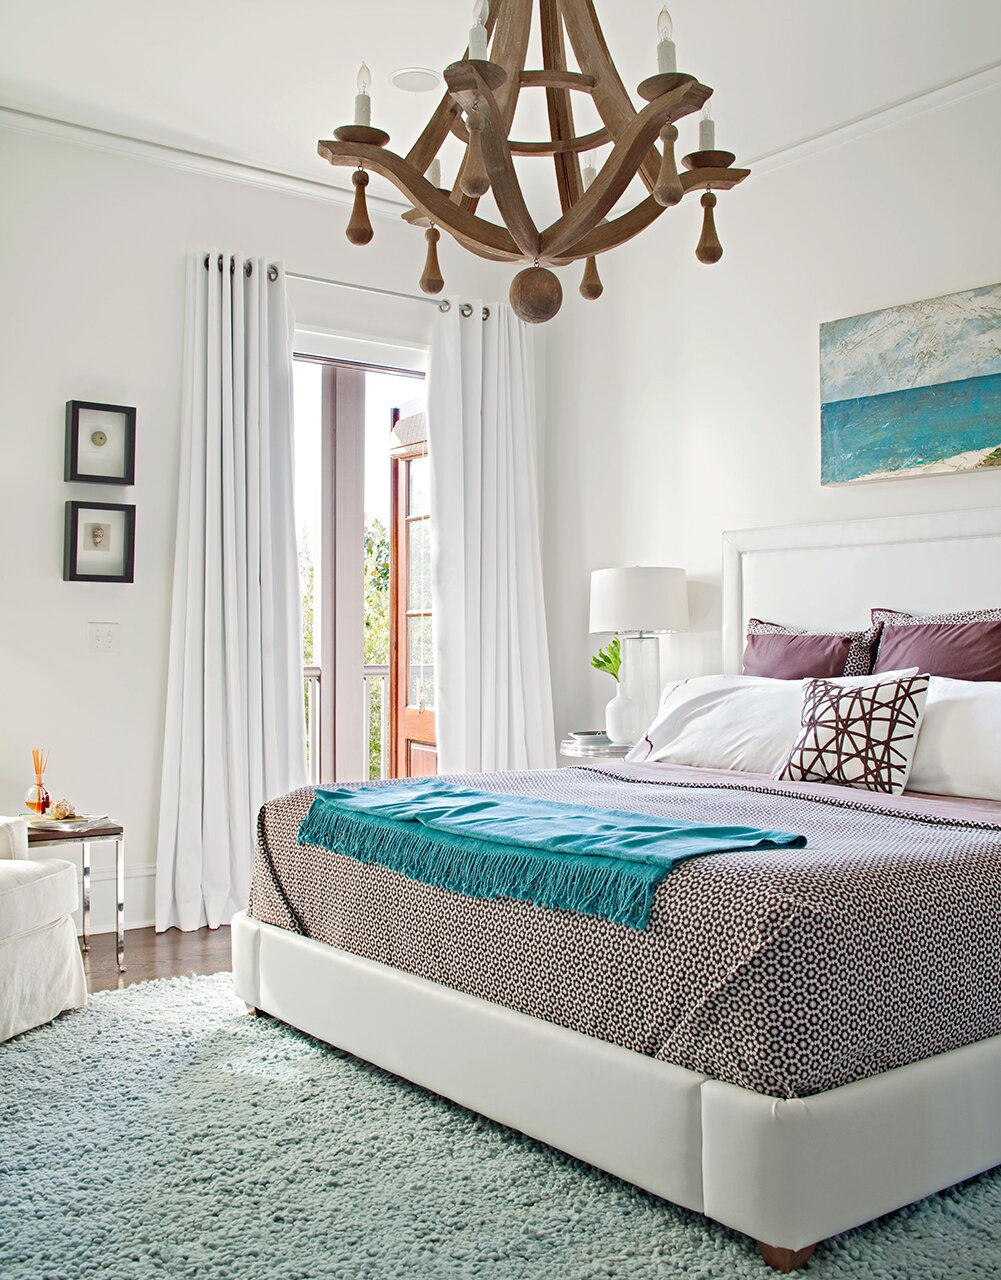 master bedroom wood chandelier blue blanket